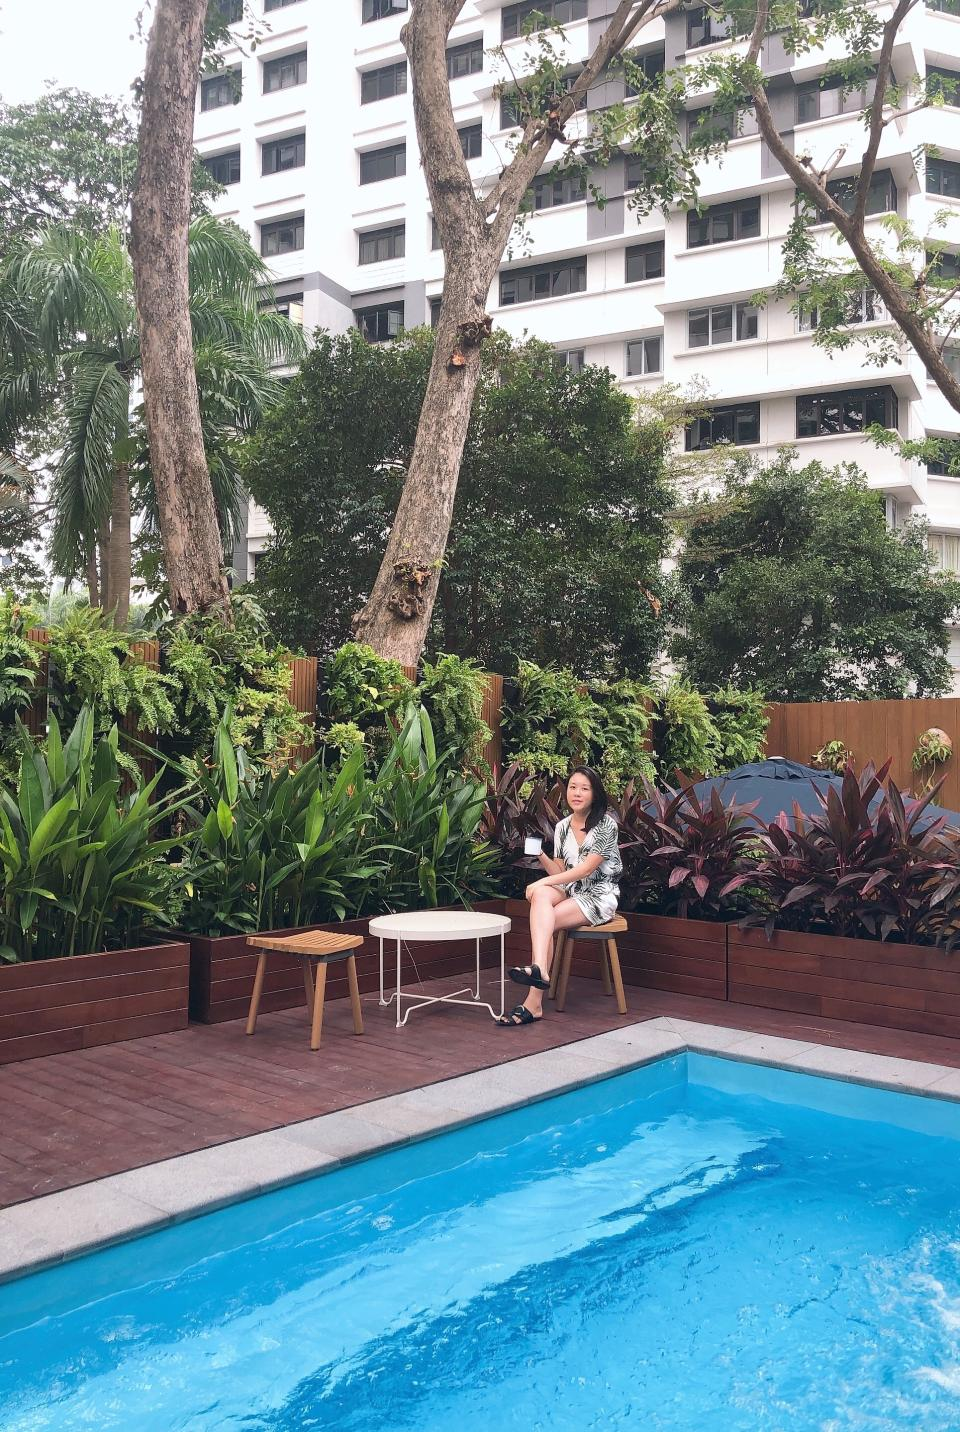 Jump into the plunge pool to refresh yourself in the summer heat. (PHOTO: Sheila Chiang/Yahoo Lifestyle Singapore)